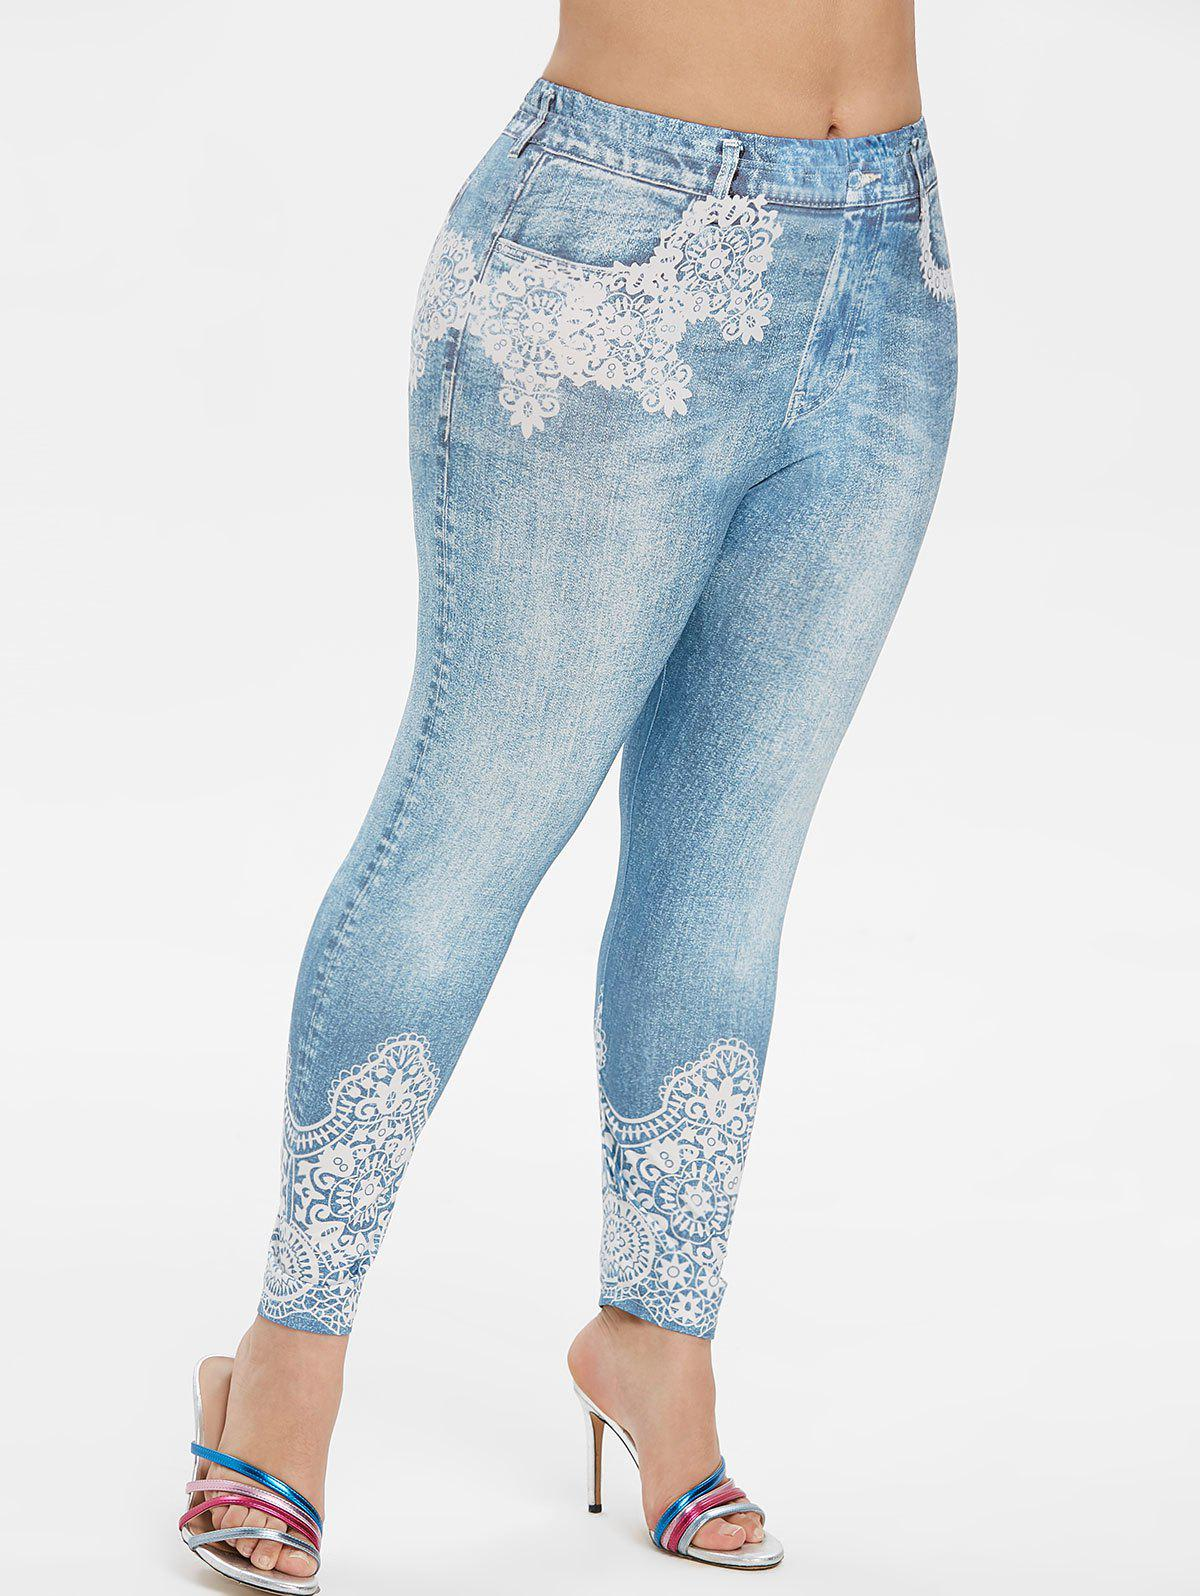 Plus Size Skinny 3D Lace Jean Print Jeggings - BLUE GRAY 3X